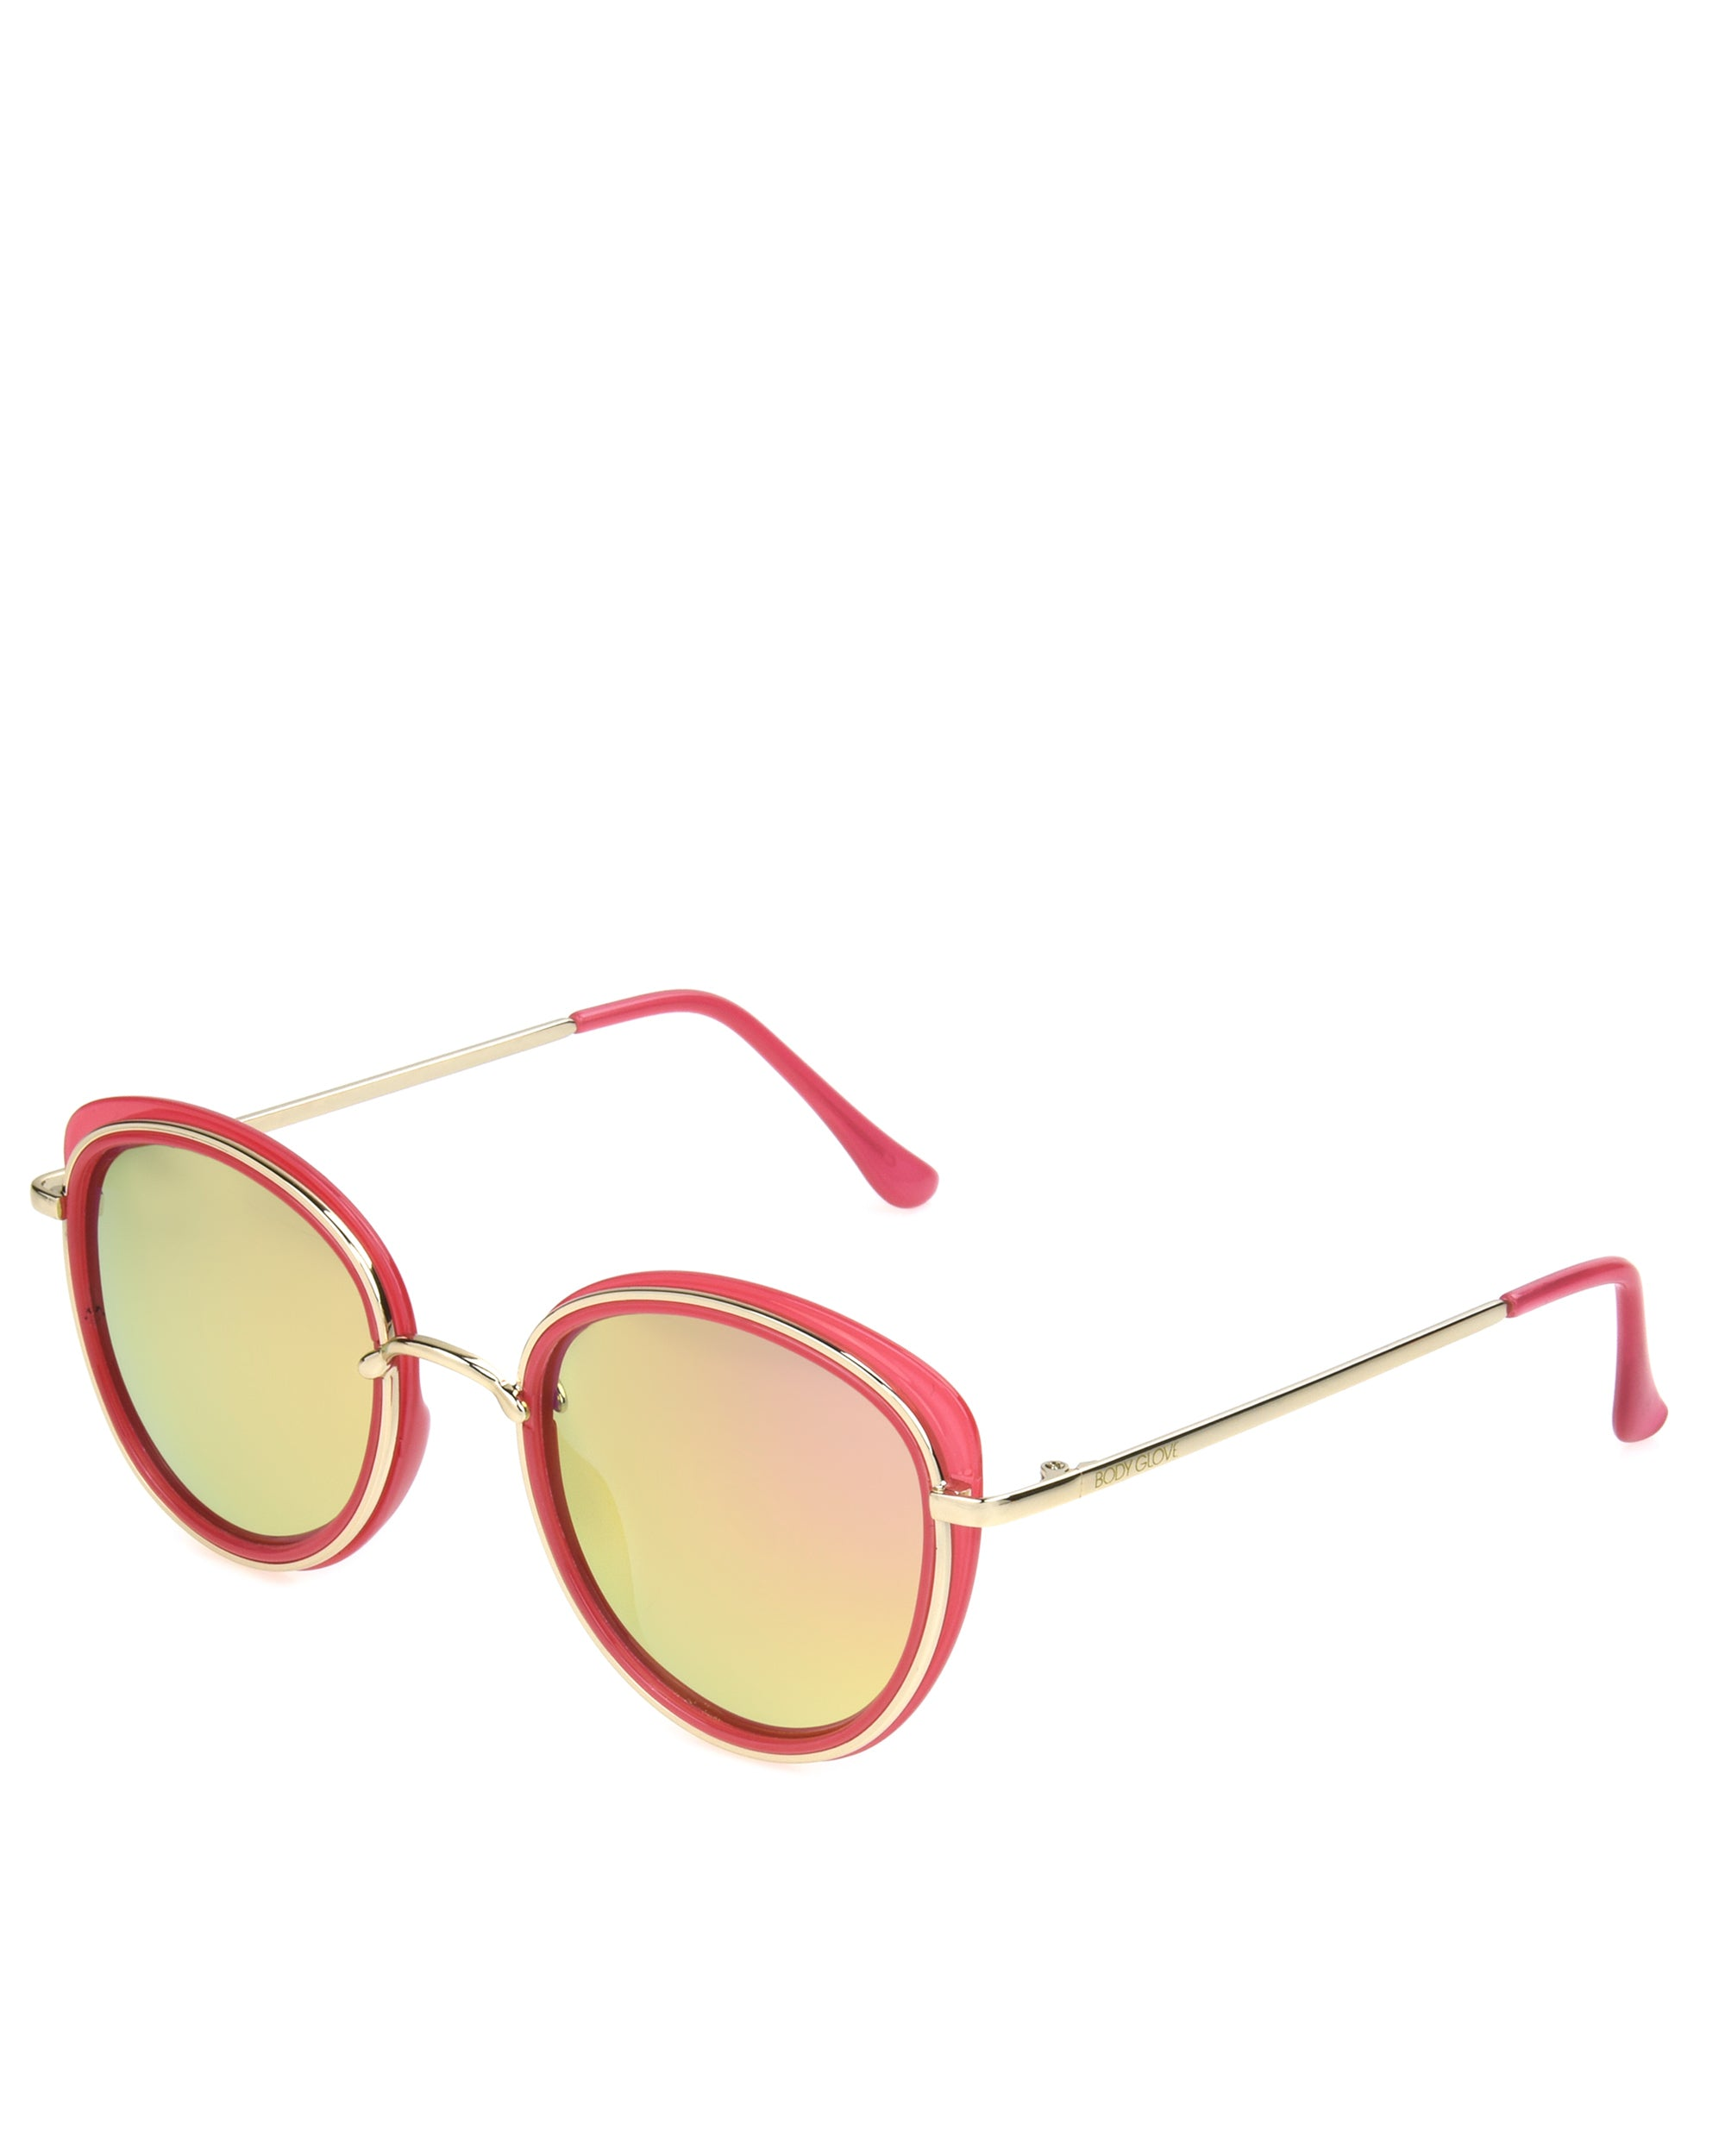 Women's BGL1919 Polarized Sunglasses - Gold/Pink